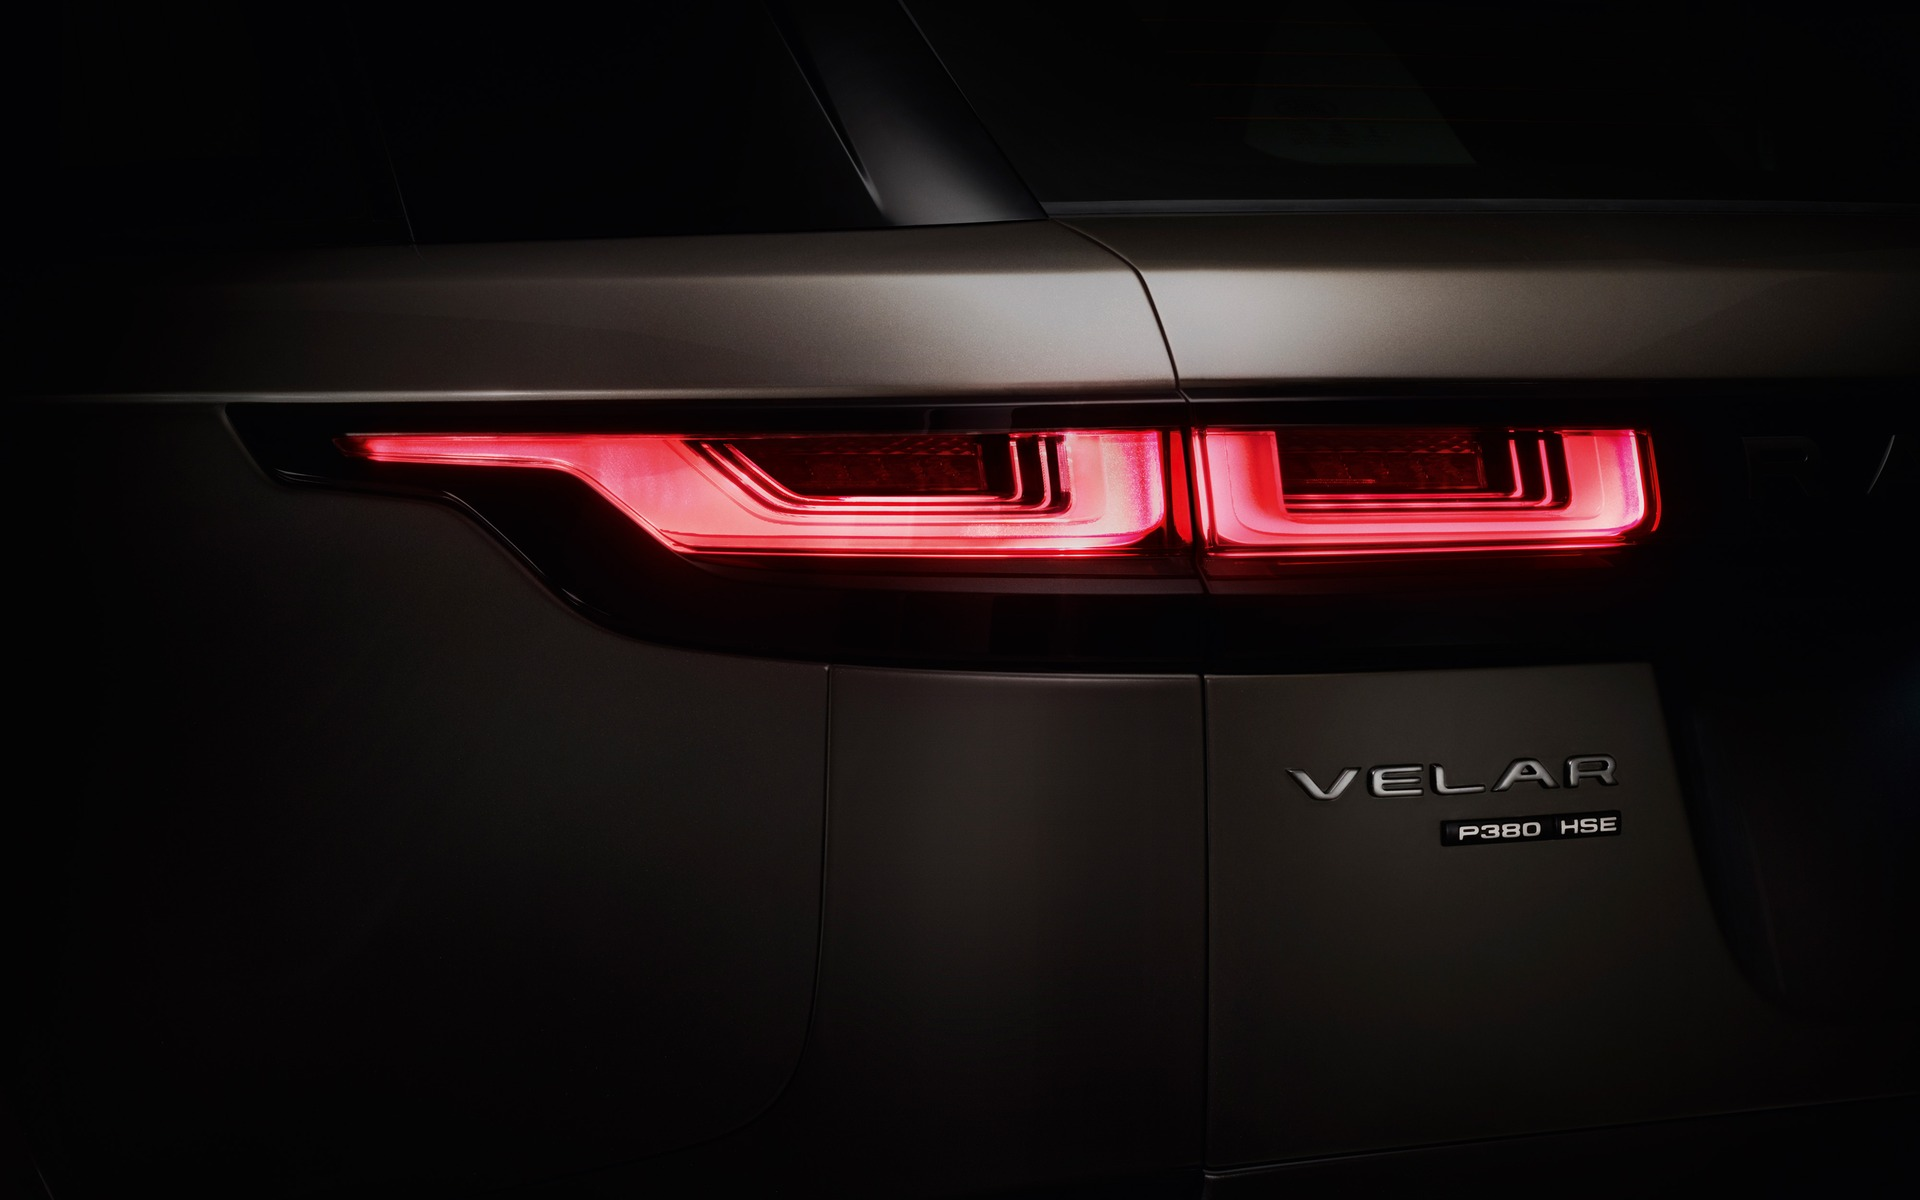 Land Rover Velar >> 2018 Range Rover Velar: World Debut in London - 21/22